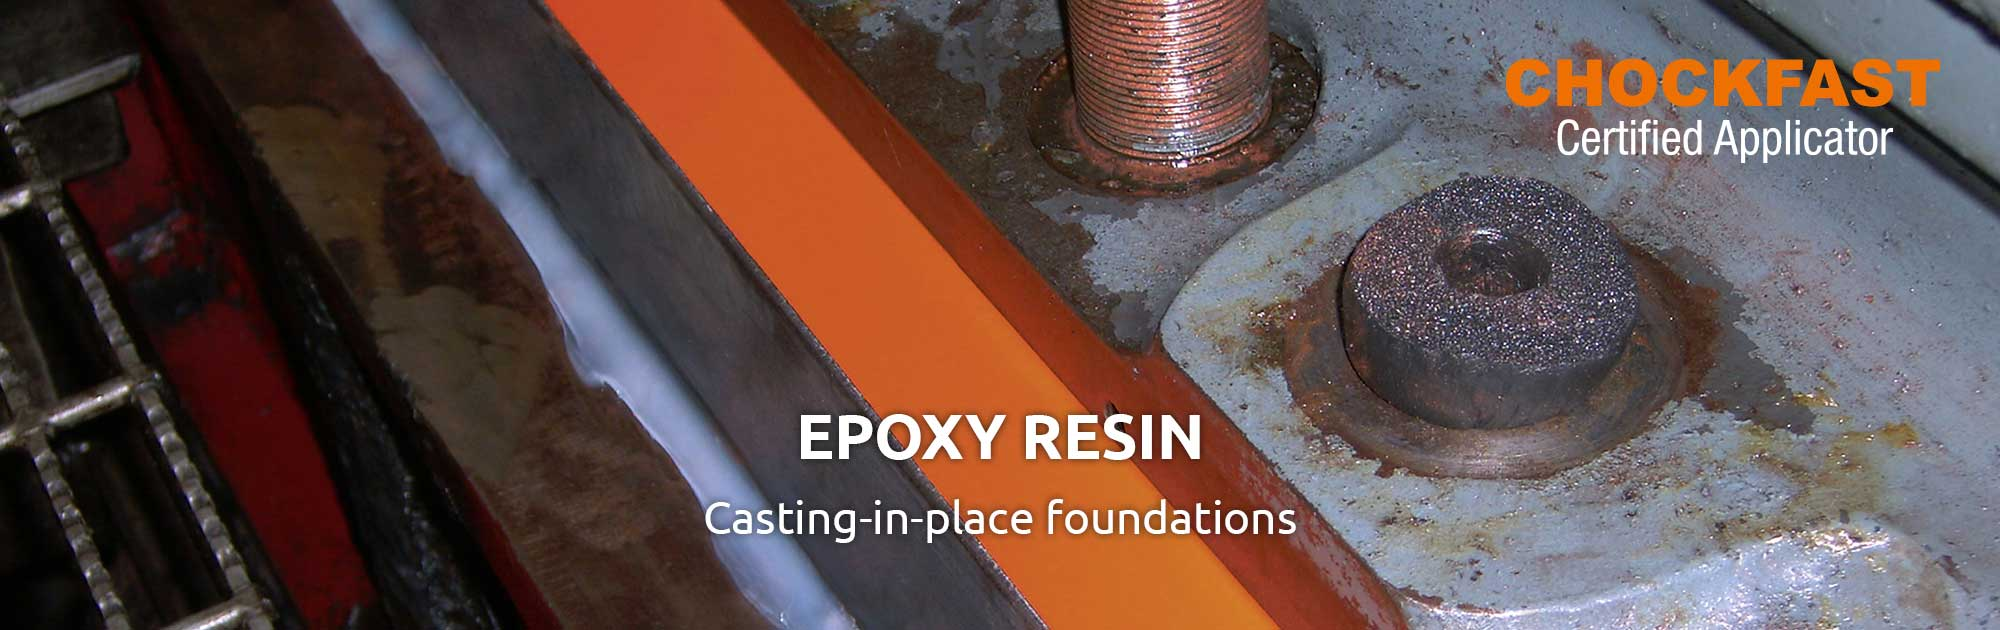 Epoxy resin casting-in-place foundation by MIM Hamburg